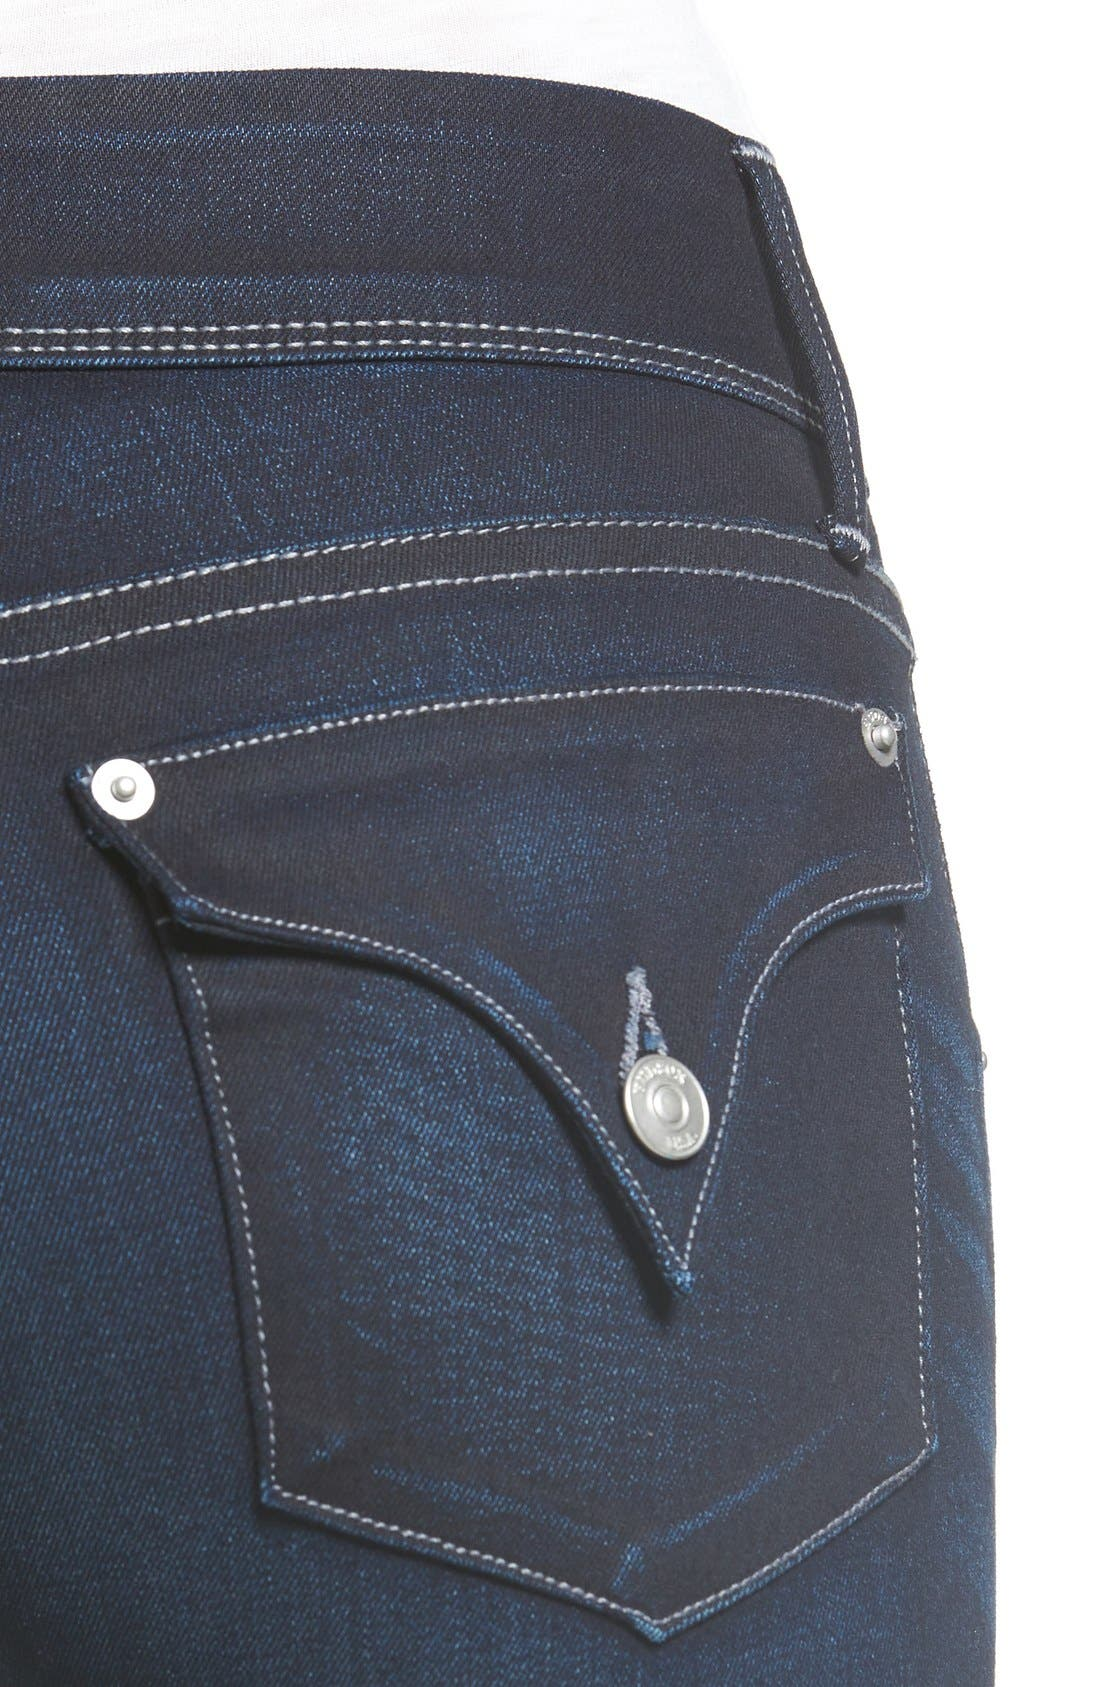 'Beth' Baby Bootcut Jeans,                             Alternate thumbnail 4, color,                             402